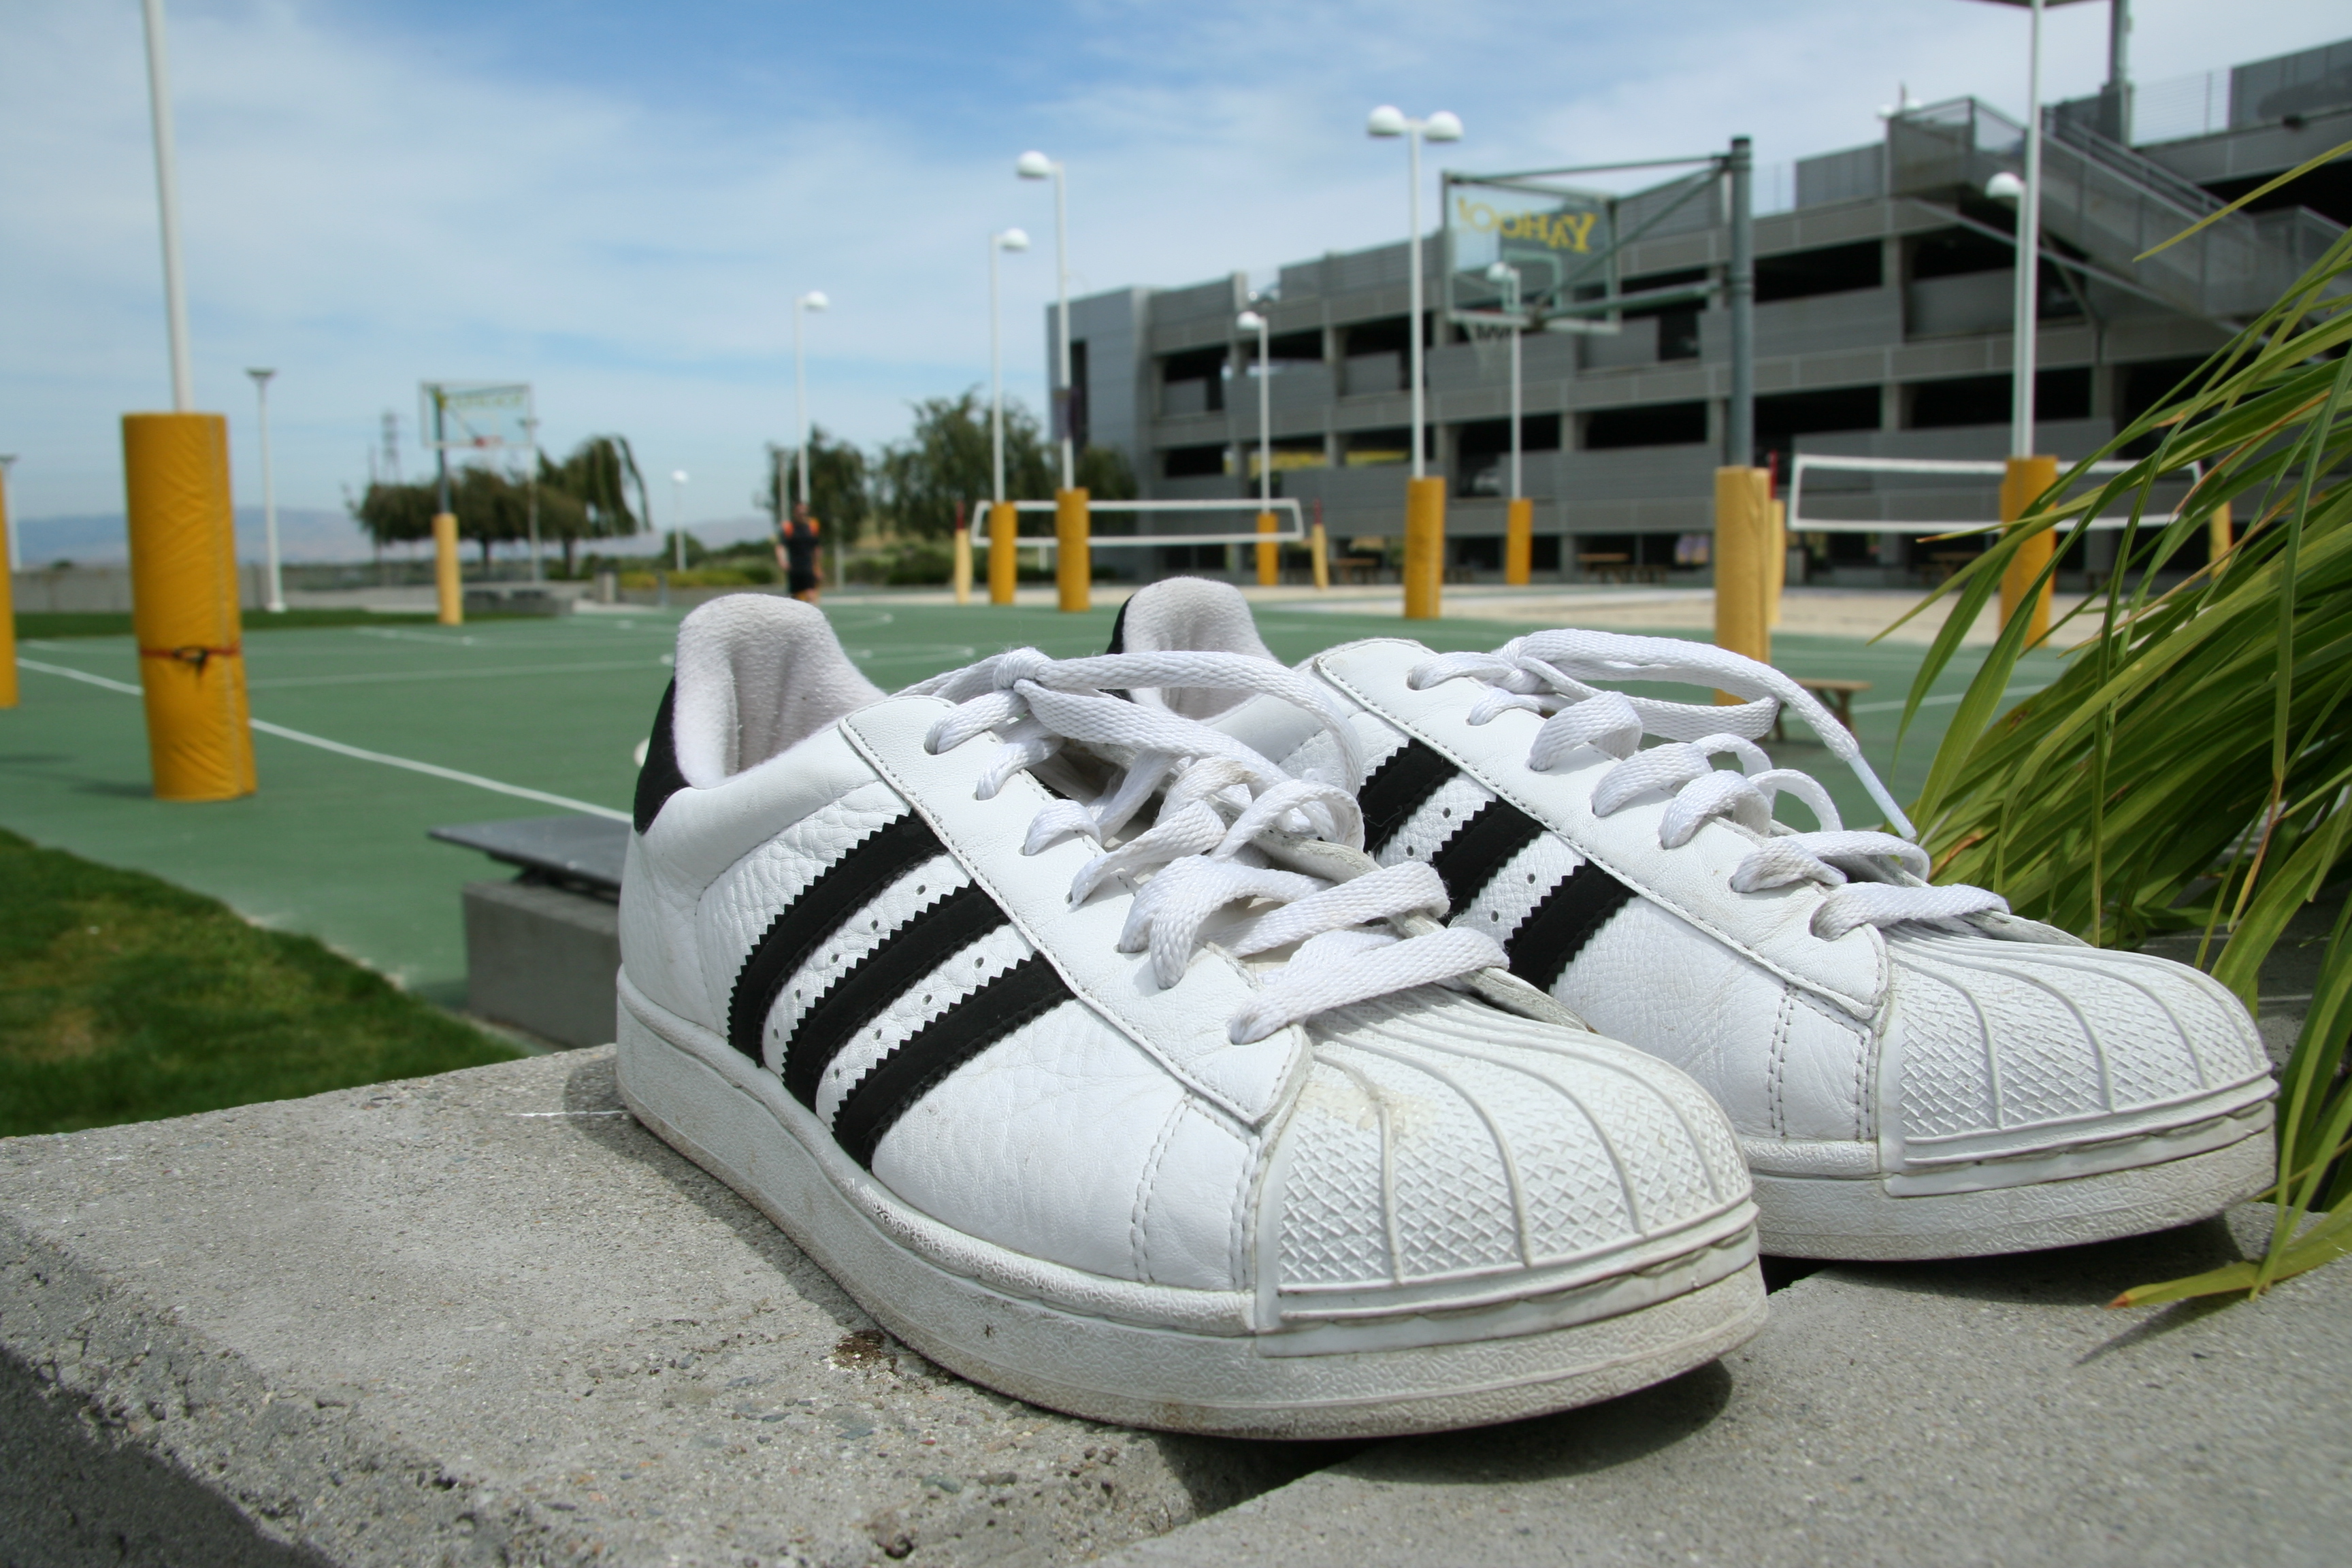 File:Adidas Superstar shoes pair.jpg